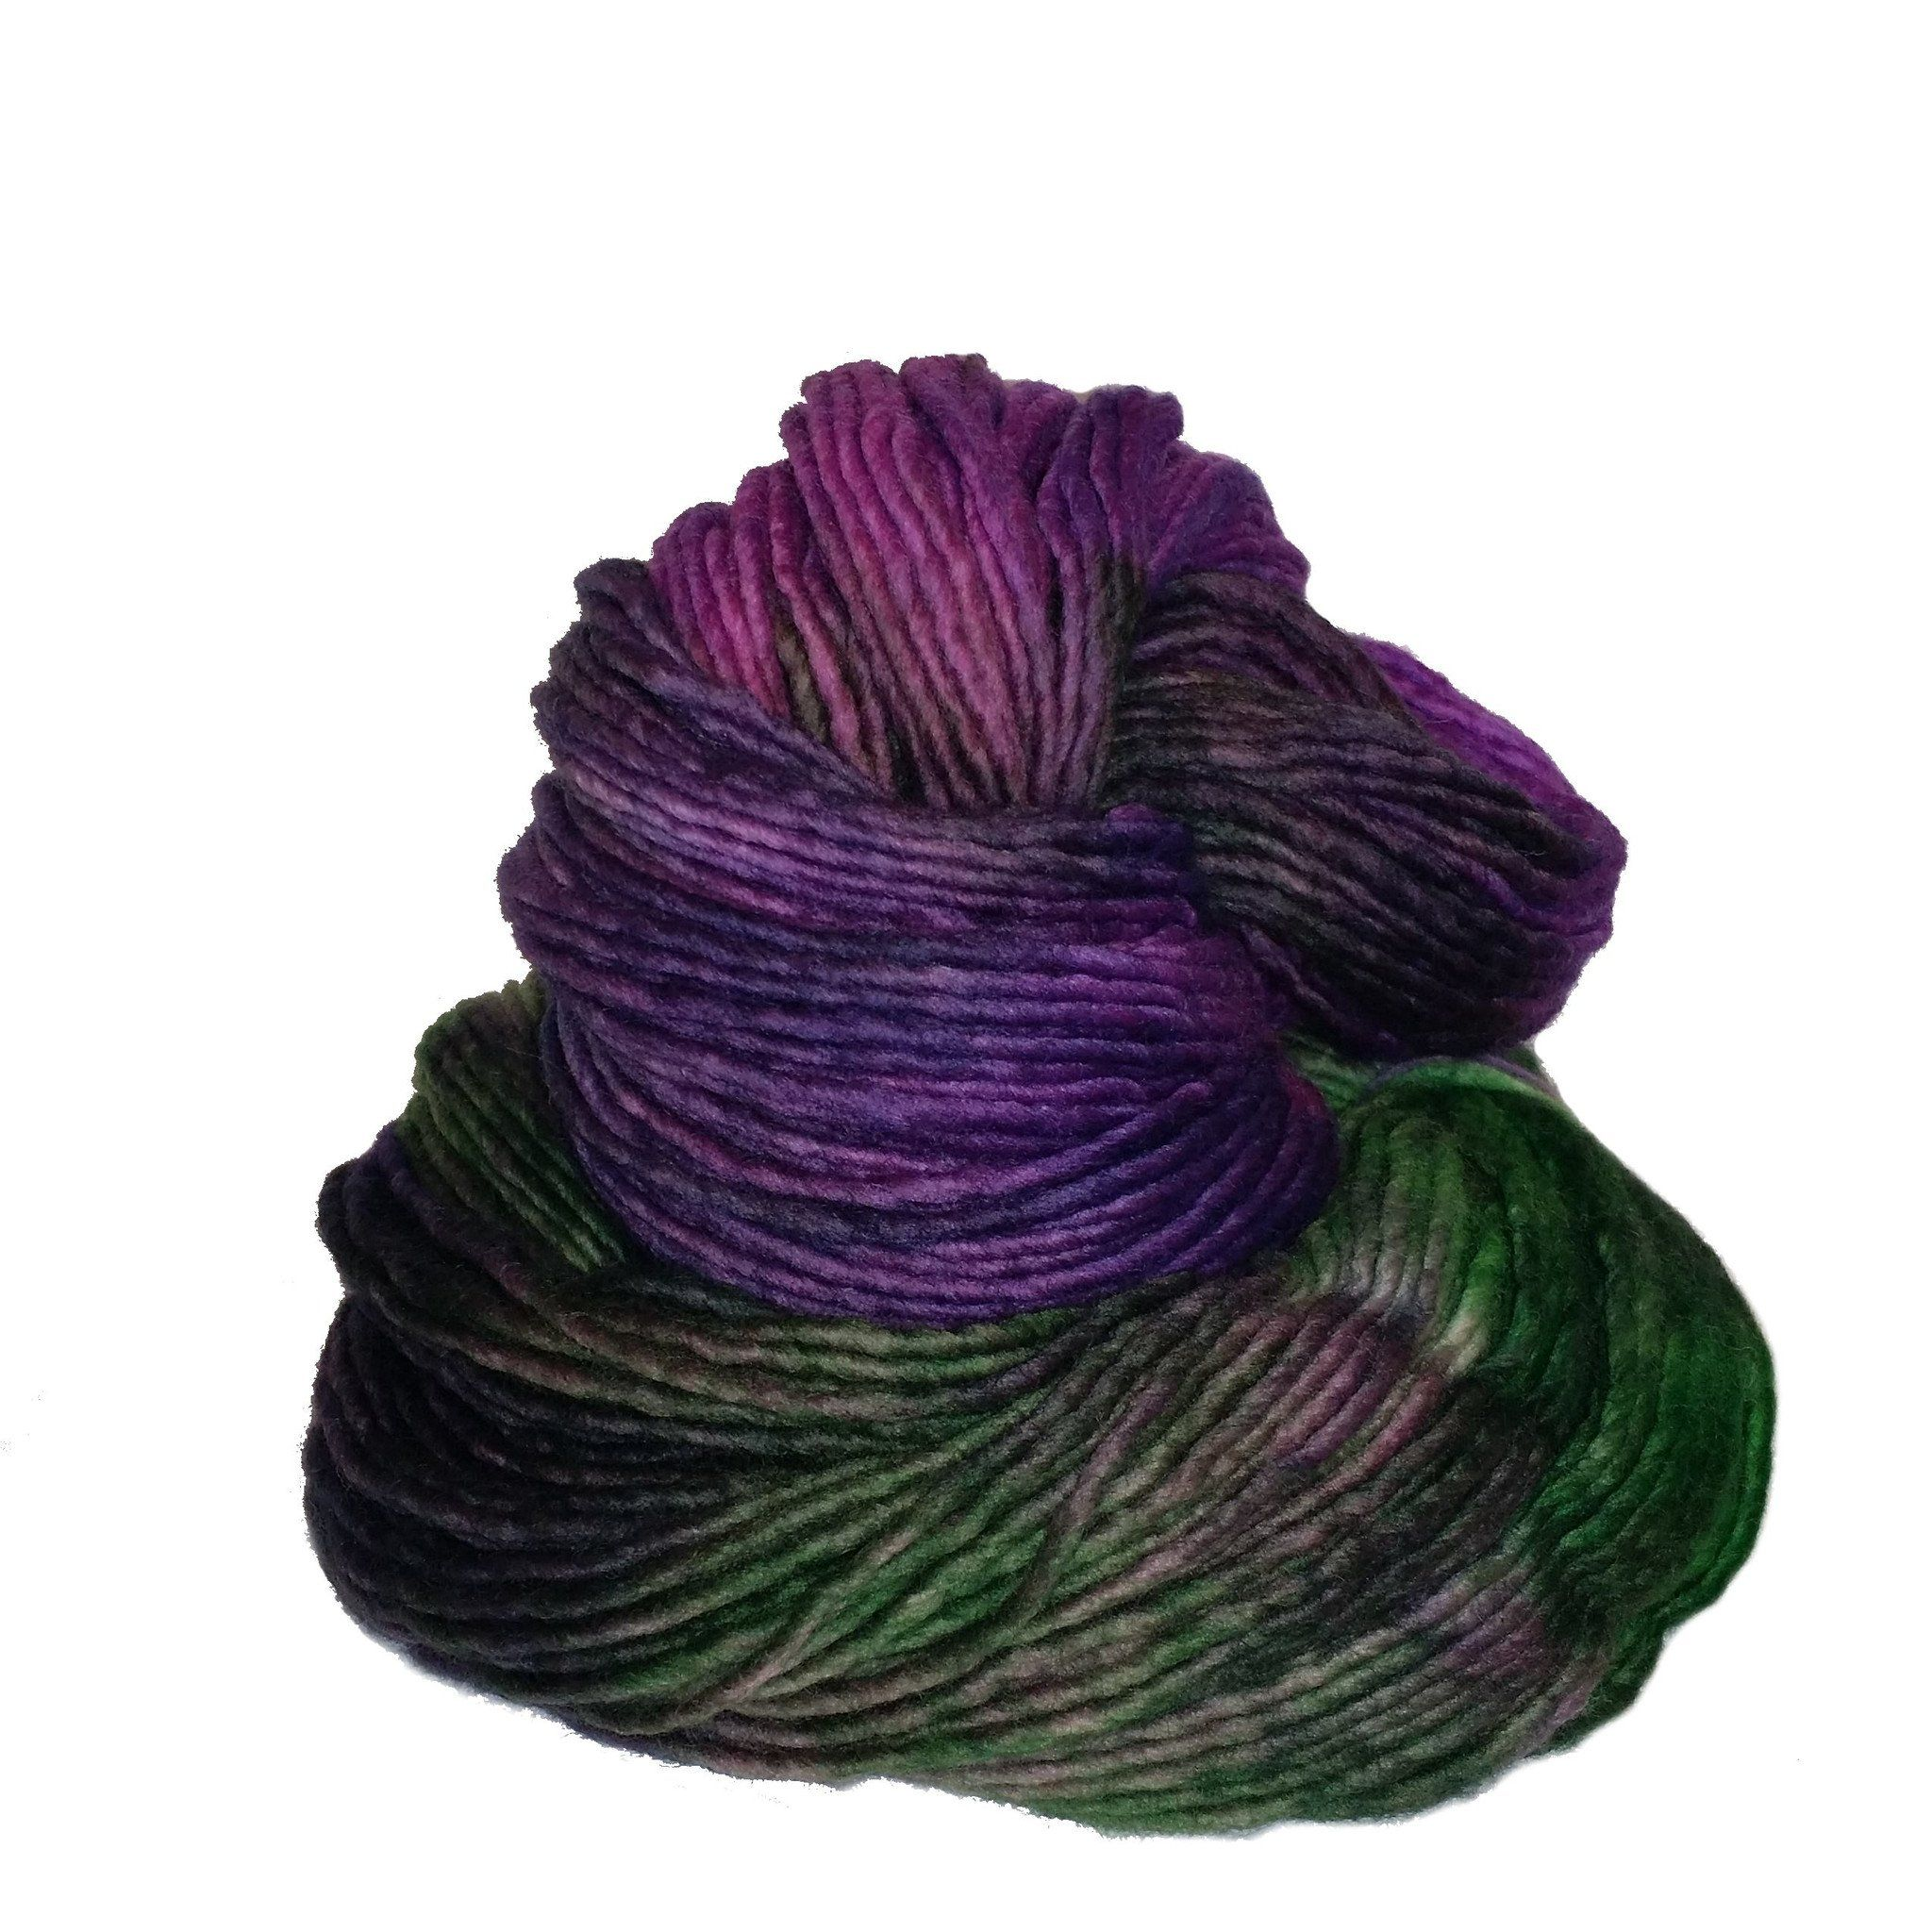 This super soft single ply 100% merino is produced in Uruguay by a woman's cooperative, Each hand-dyed skein is signed by the artist. Worsted weight with a generous 219 yards per skein.